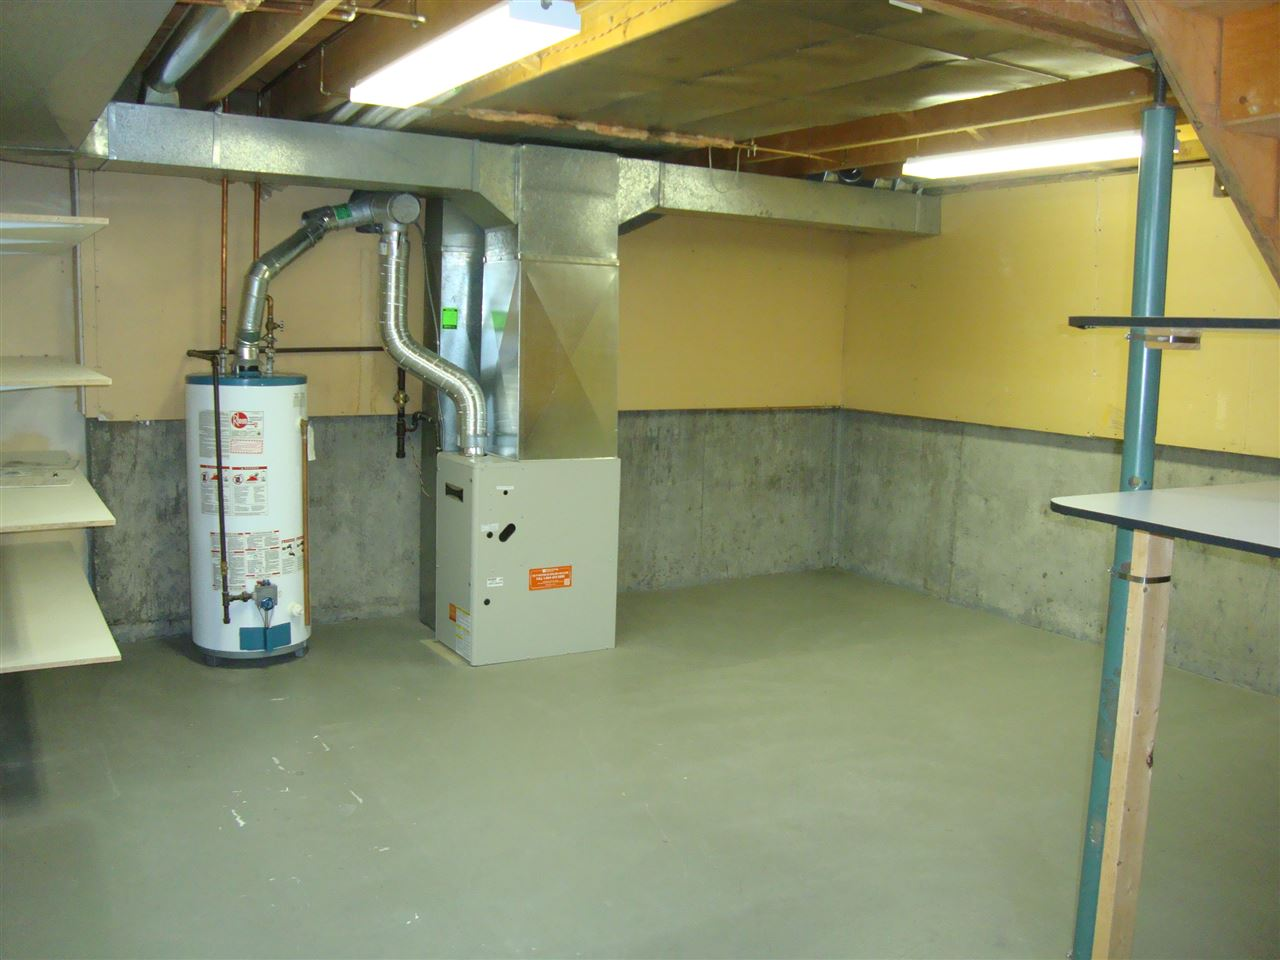 Large, clean and neat basement is ready for your development ideas.